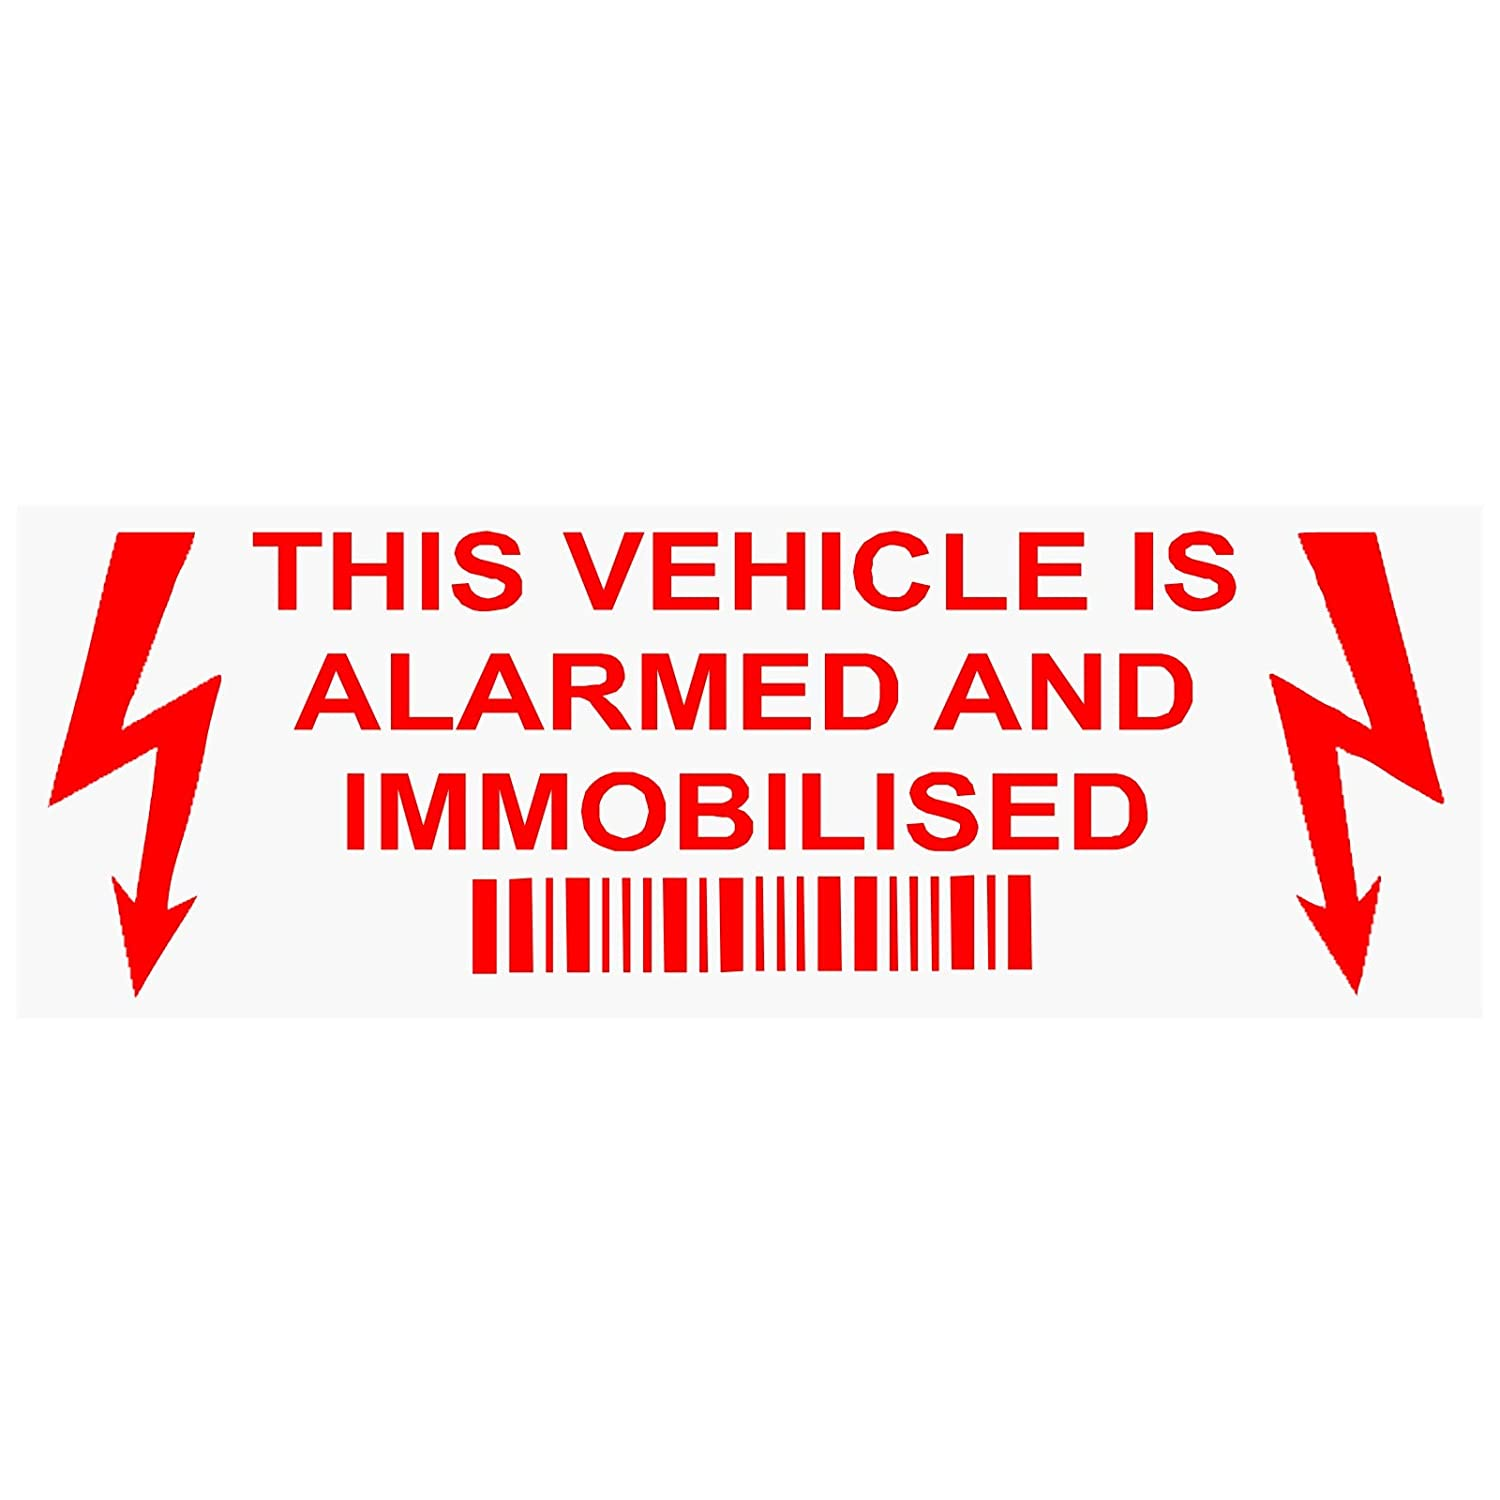 5 x Alarm and Immobiliser Fitted Stickers-LIGHTNING-RED/CLEAR-30mm x 87mm-Alarmed and Immobilised Security Warning Window Signs-Car, Van, Truck, Caravan, Motorhome, Lorry, Taxi, Minicab, Automobile, Notice, Deterrent, Safety Platinum Place